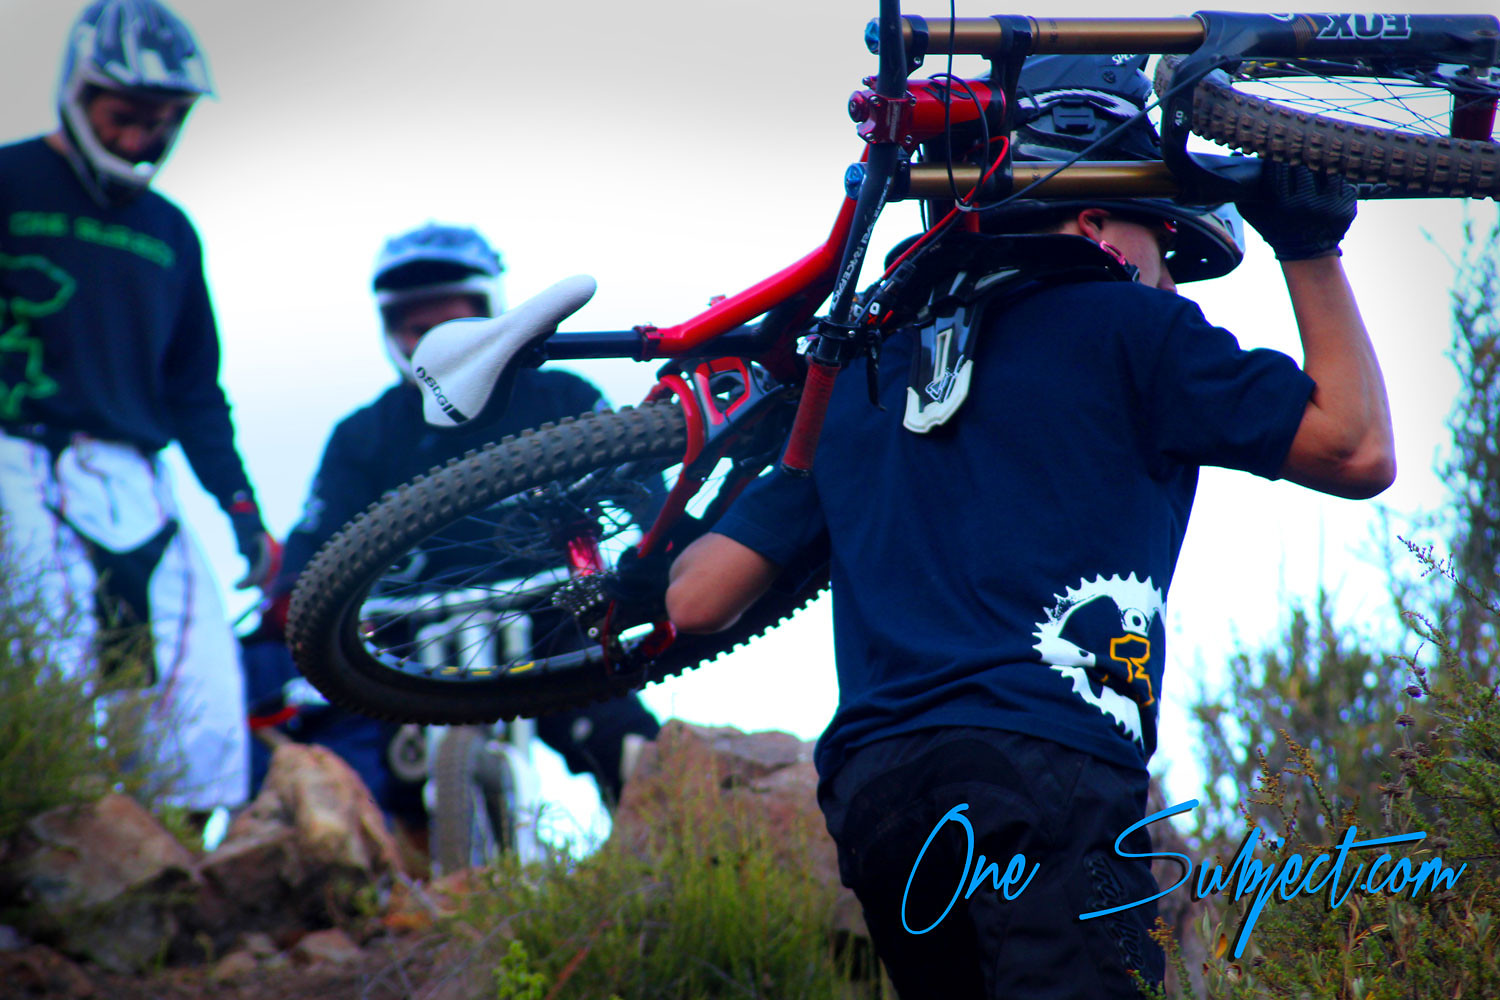 bike hike - GnarHuck - Mountain Biking Pictures - Vital MTB